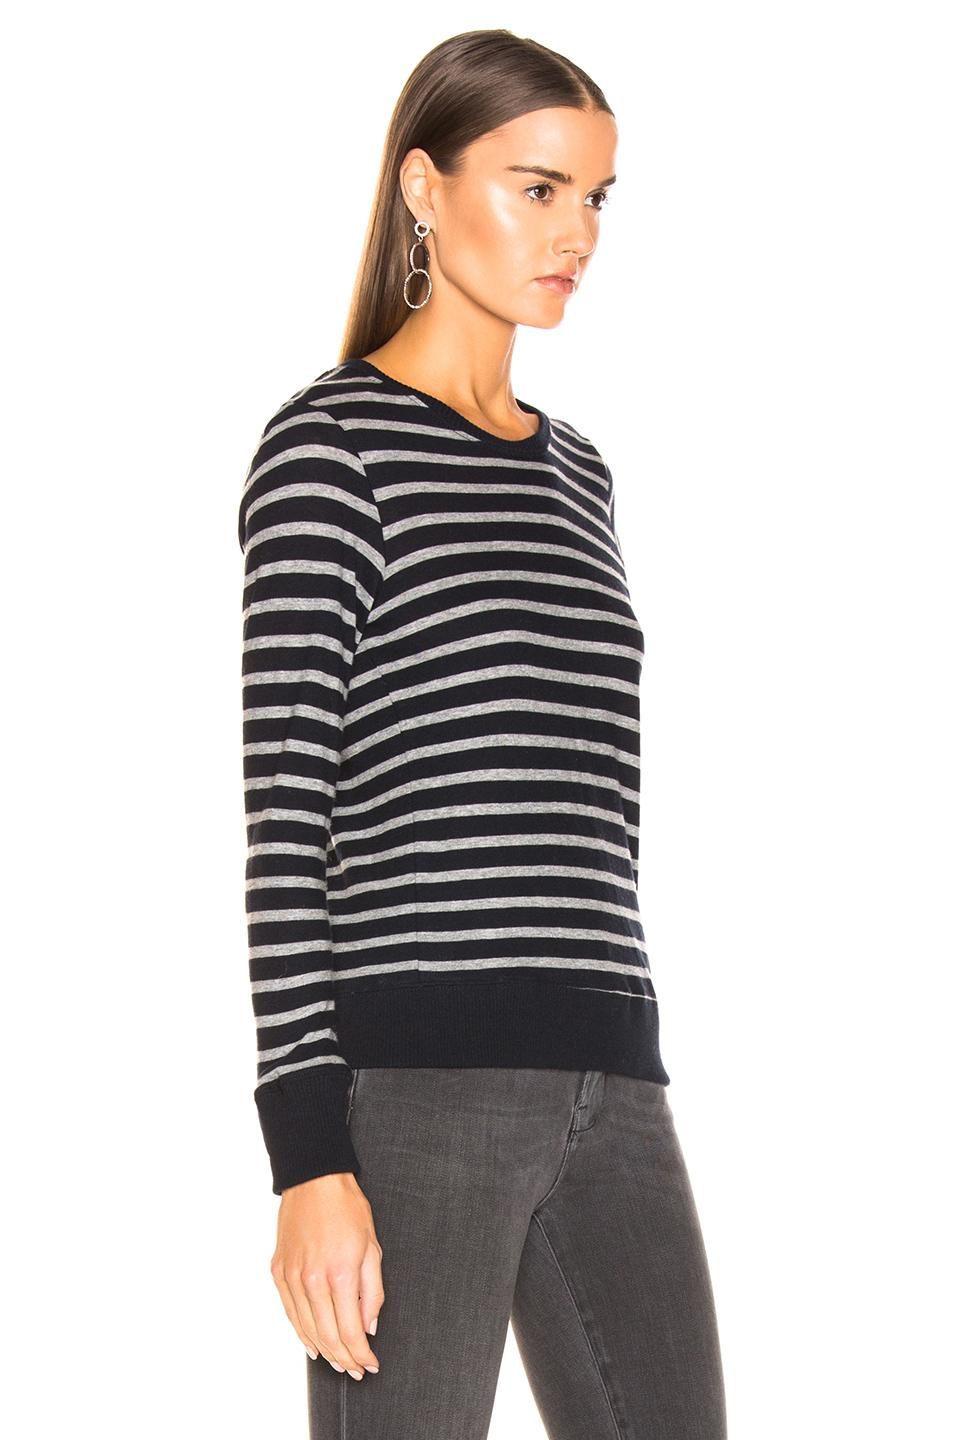 Enza Costa - Black Cashmere Easy Sweatshirt - Lyst. View fullscreen 3f2456ecc